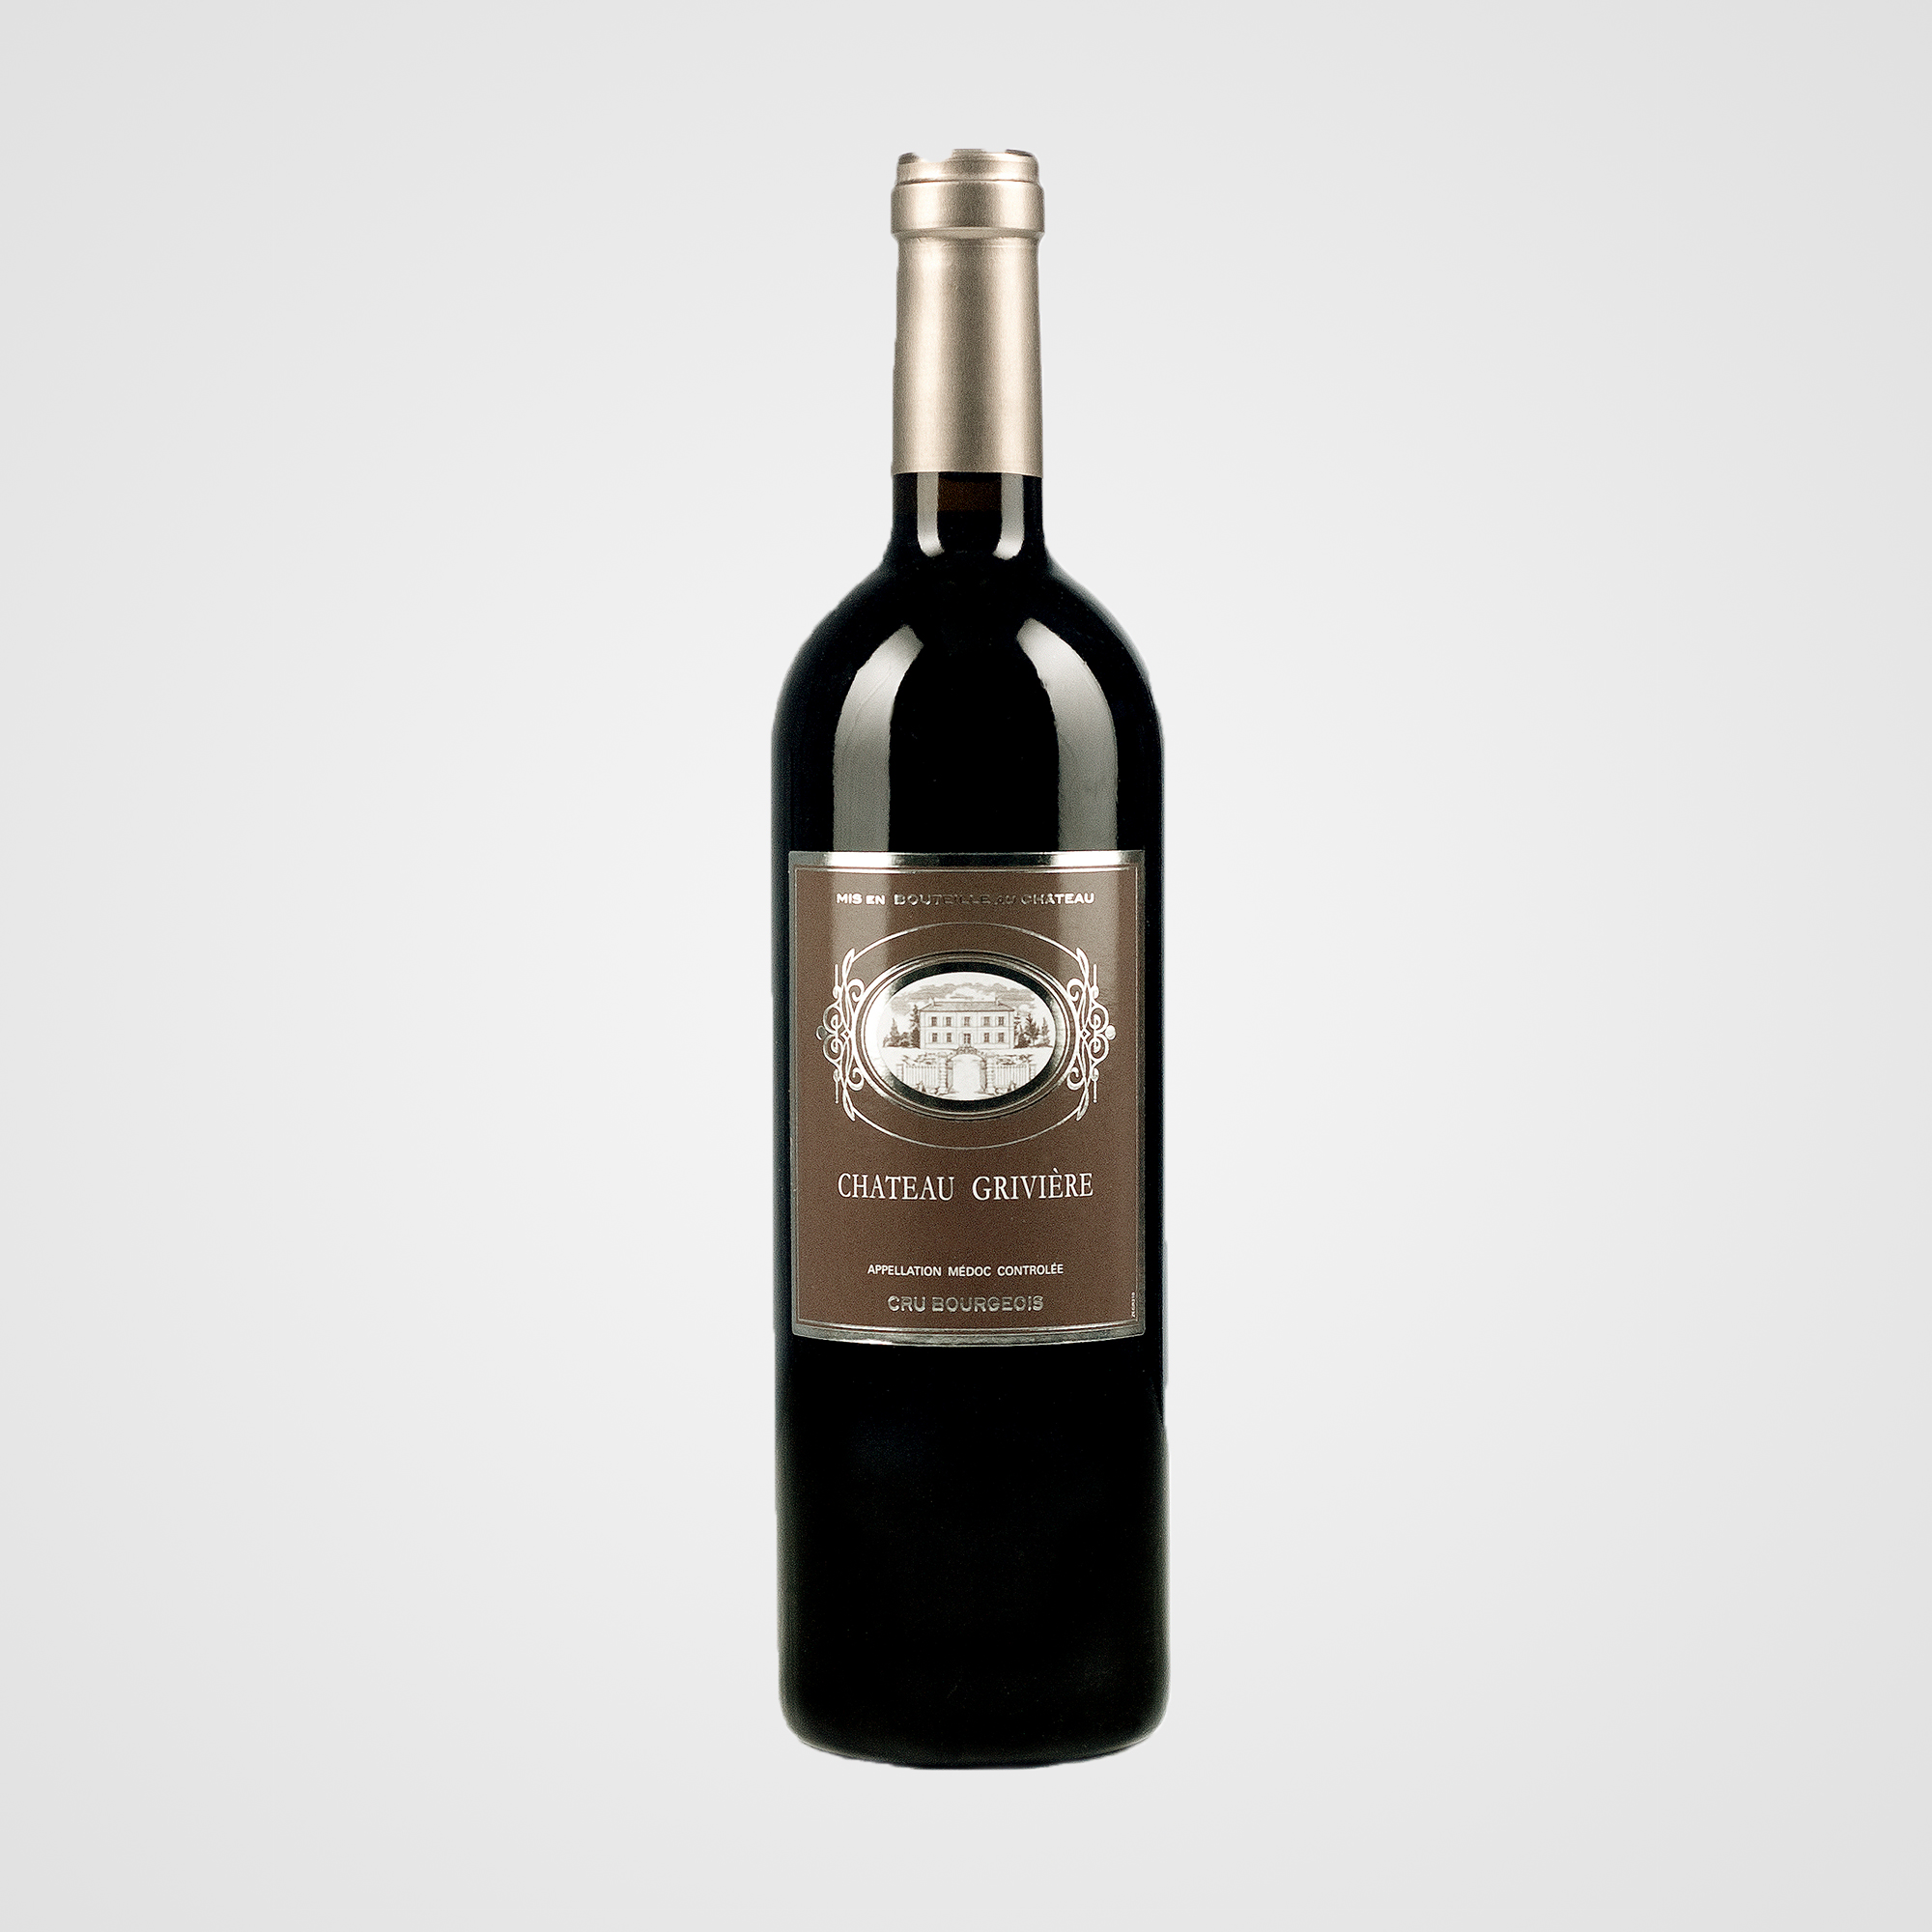 CHÂTEAU GRIVIERE - Château Grivière is vinified in a powerful fruit-forward style, with ripe dark fruits, balanced by a rich, round and chewy palate, with a perfumed nose of orange blossom and delicate spices, and smooth silky tannins.